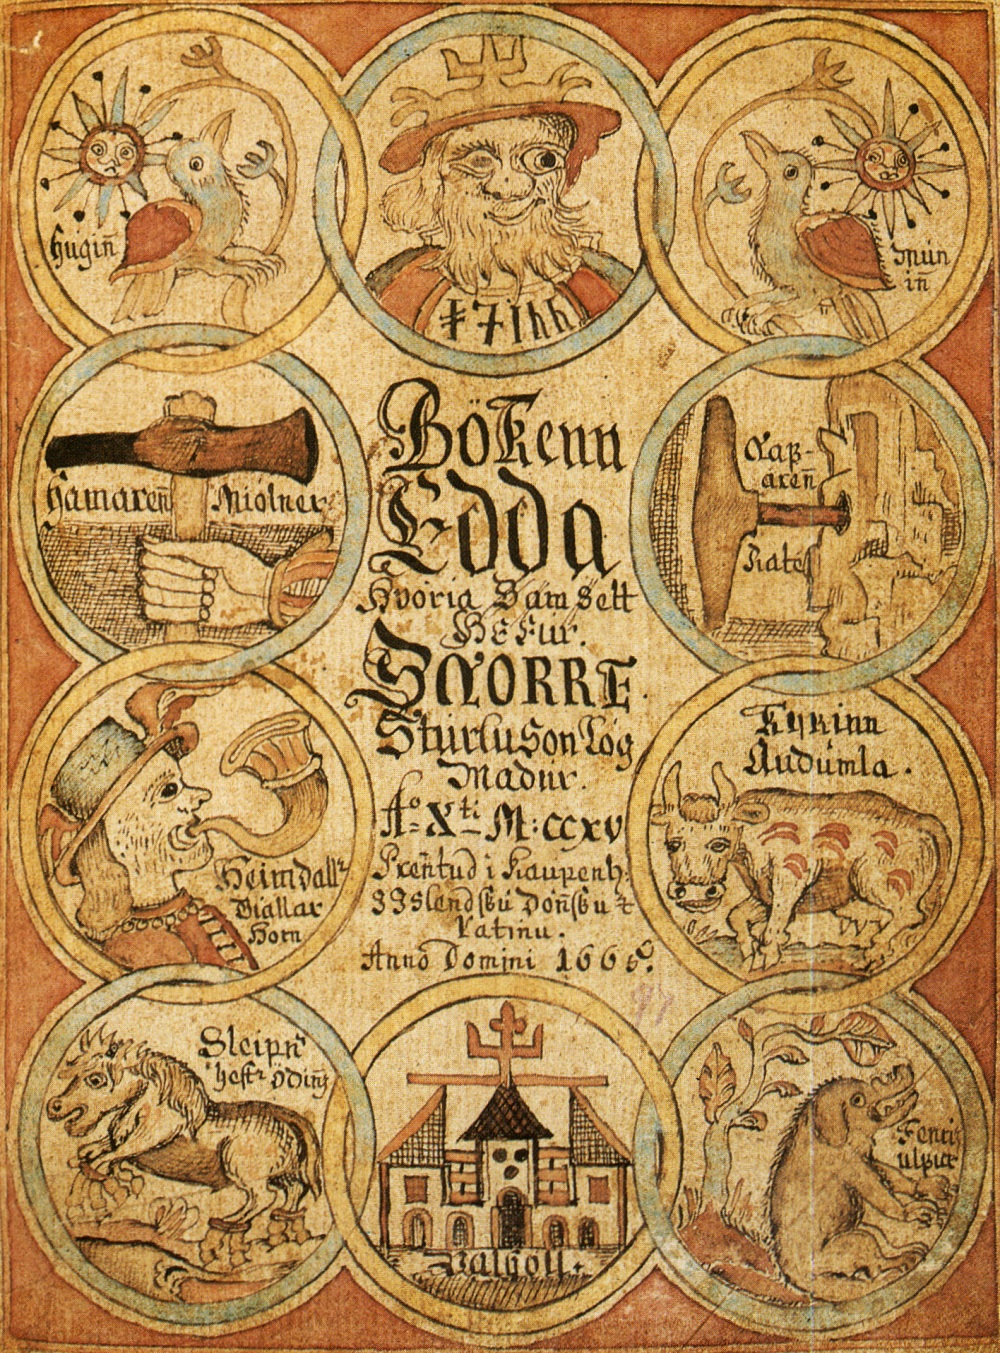 1666 Icelandic printed version of the 'Prose Edda' by Snorri Sturluson. Image source: www.commons.wikimedia.org